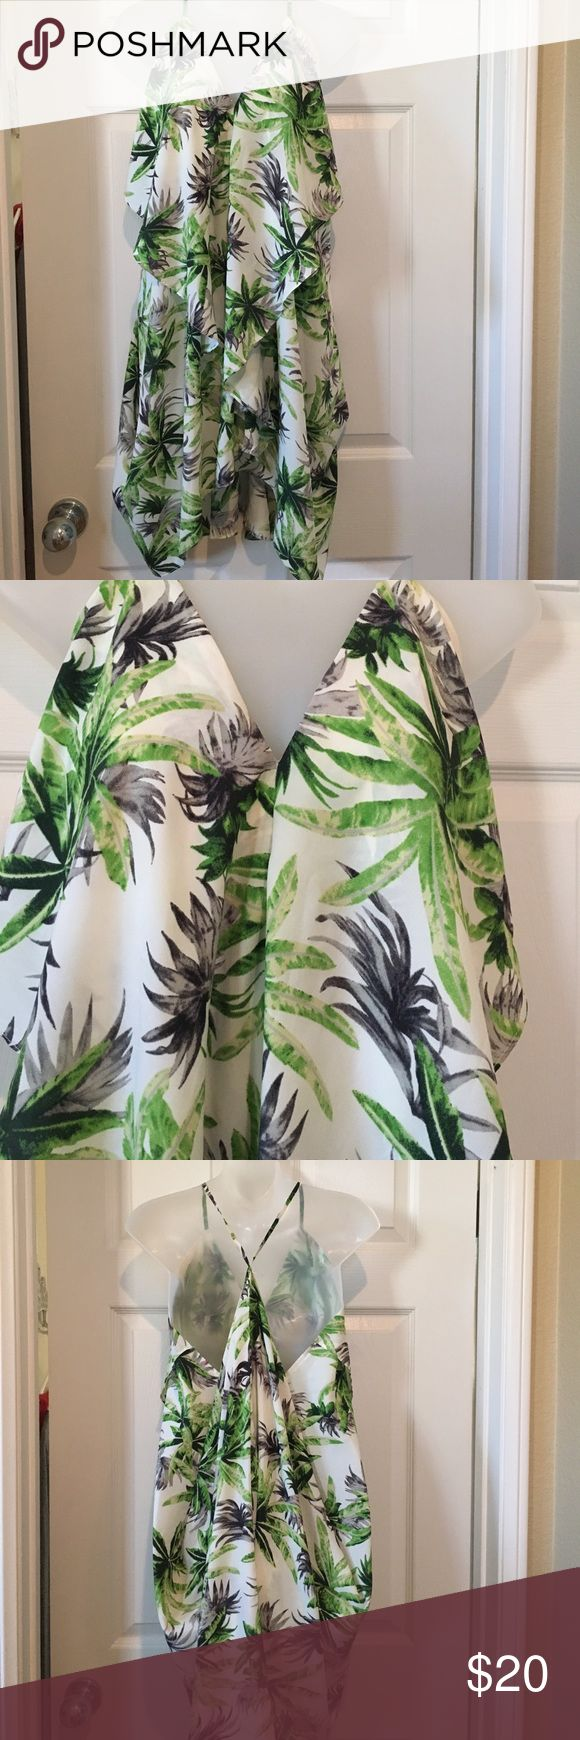 🔥Caribbean Queen 👸 tropical dress Adorable for vacation! Cute summer dress , beach cover up or a top with skinny 👖...palm tree print tag is hard to see but it's a small but very flowy on lower half...easy wash and wear Caribbean Queen Dresses